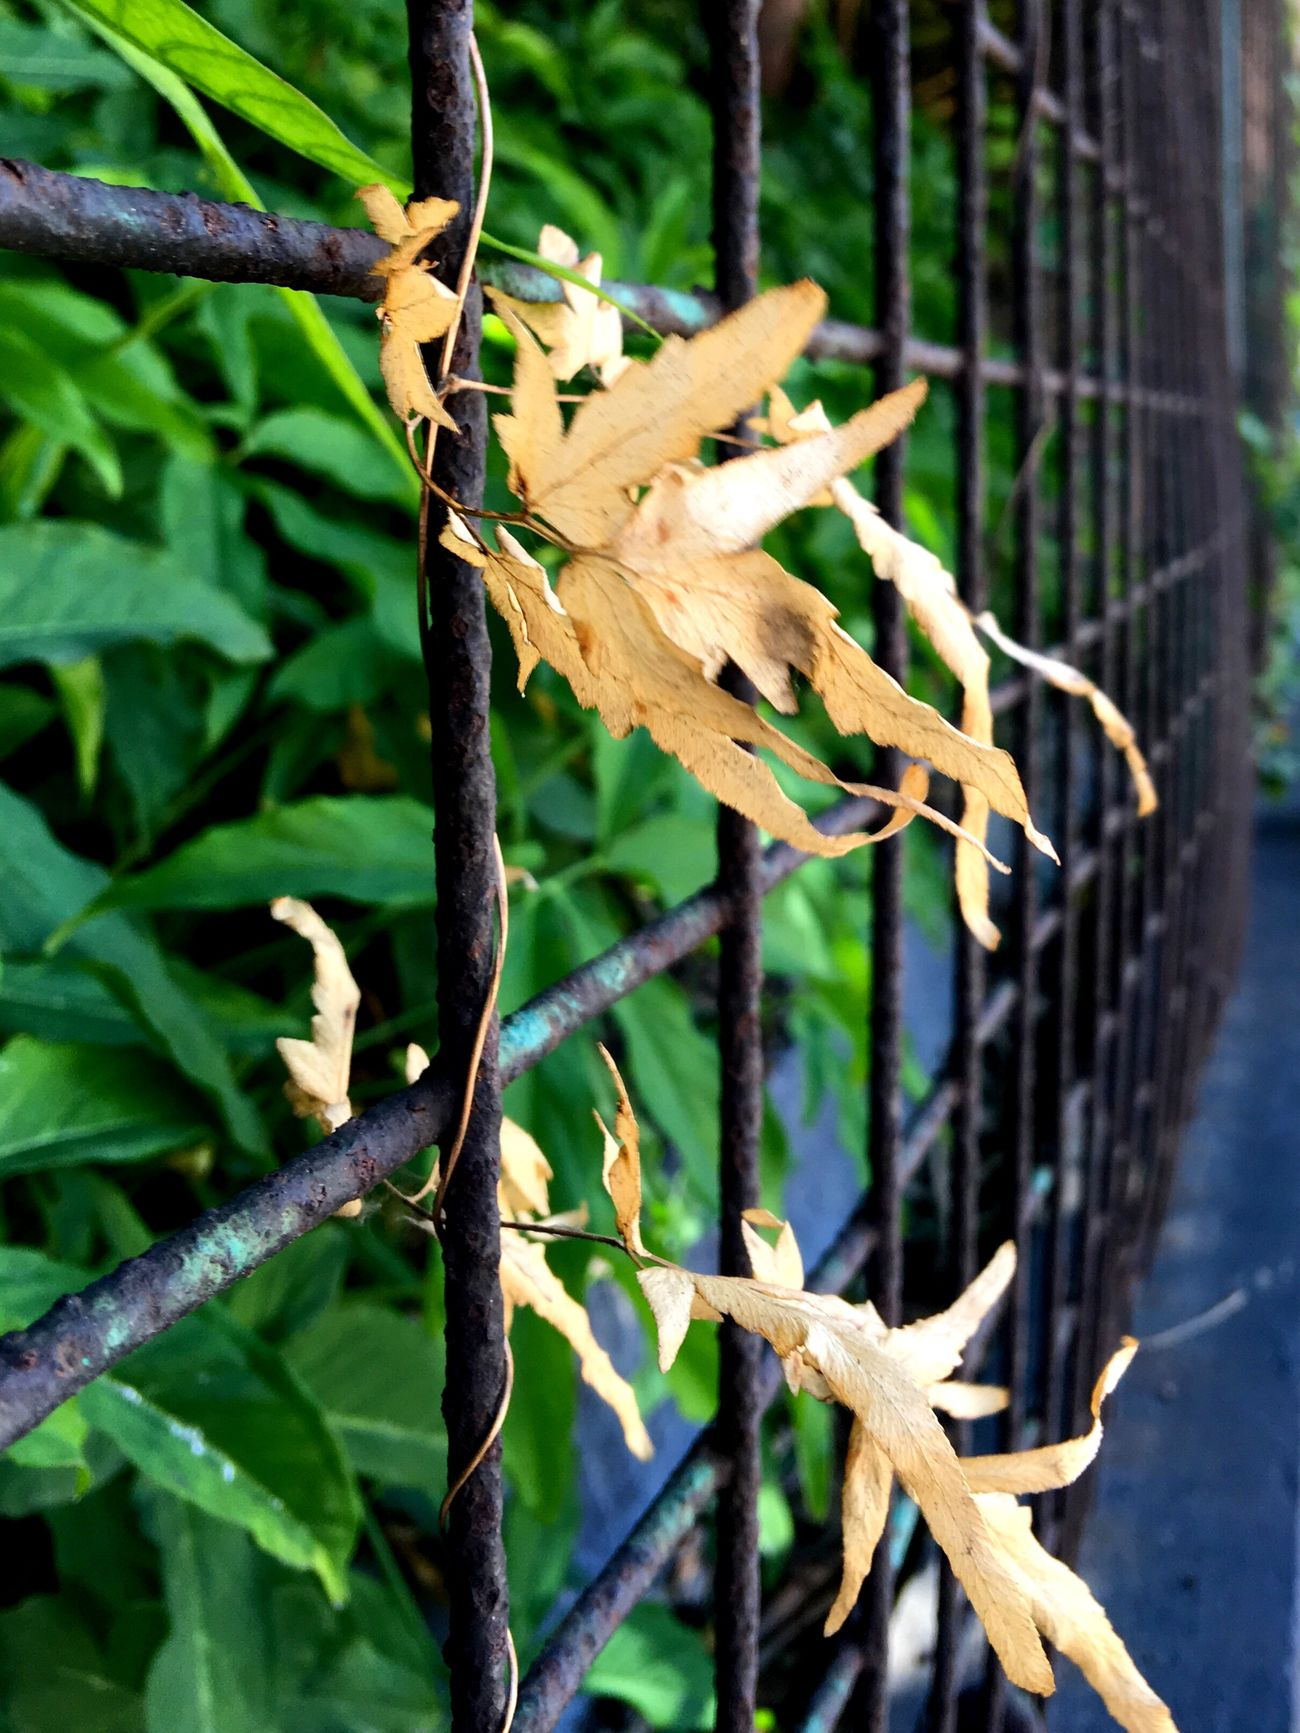 Light And Shadow IPhoneography Steel Fence Flowers, Nature And Beauty Street Photographer-2016 Eyem Awards Green Leaves Sun And Shadow Sunlight, Shades And Shadows